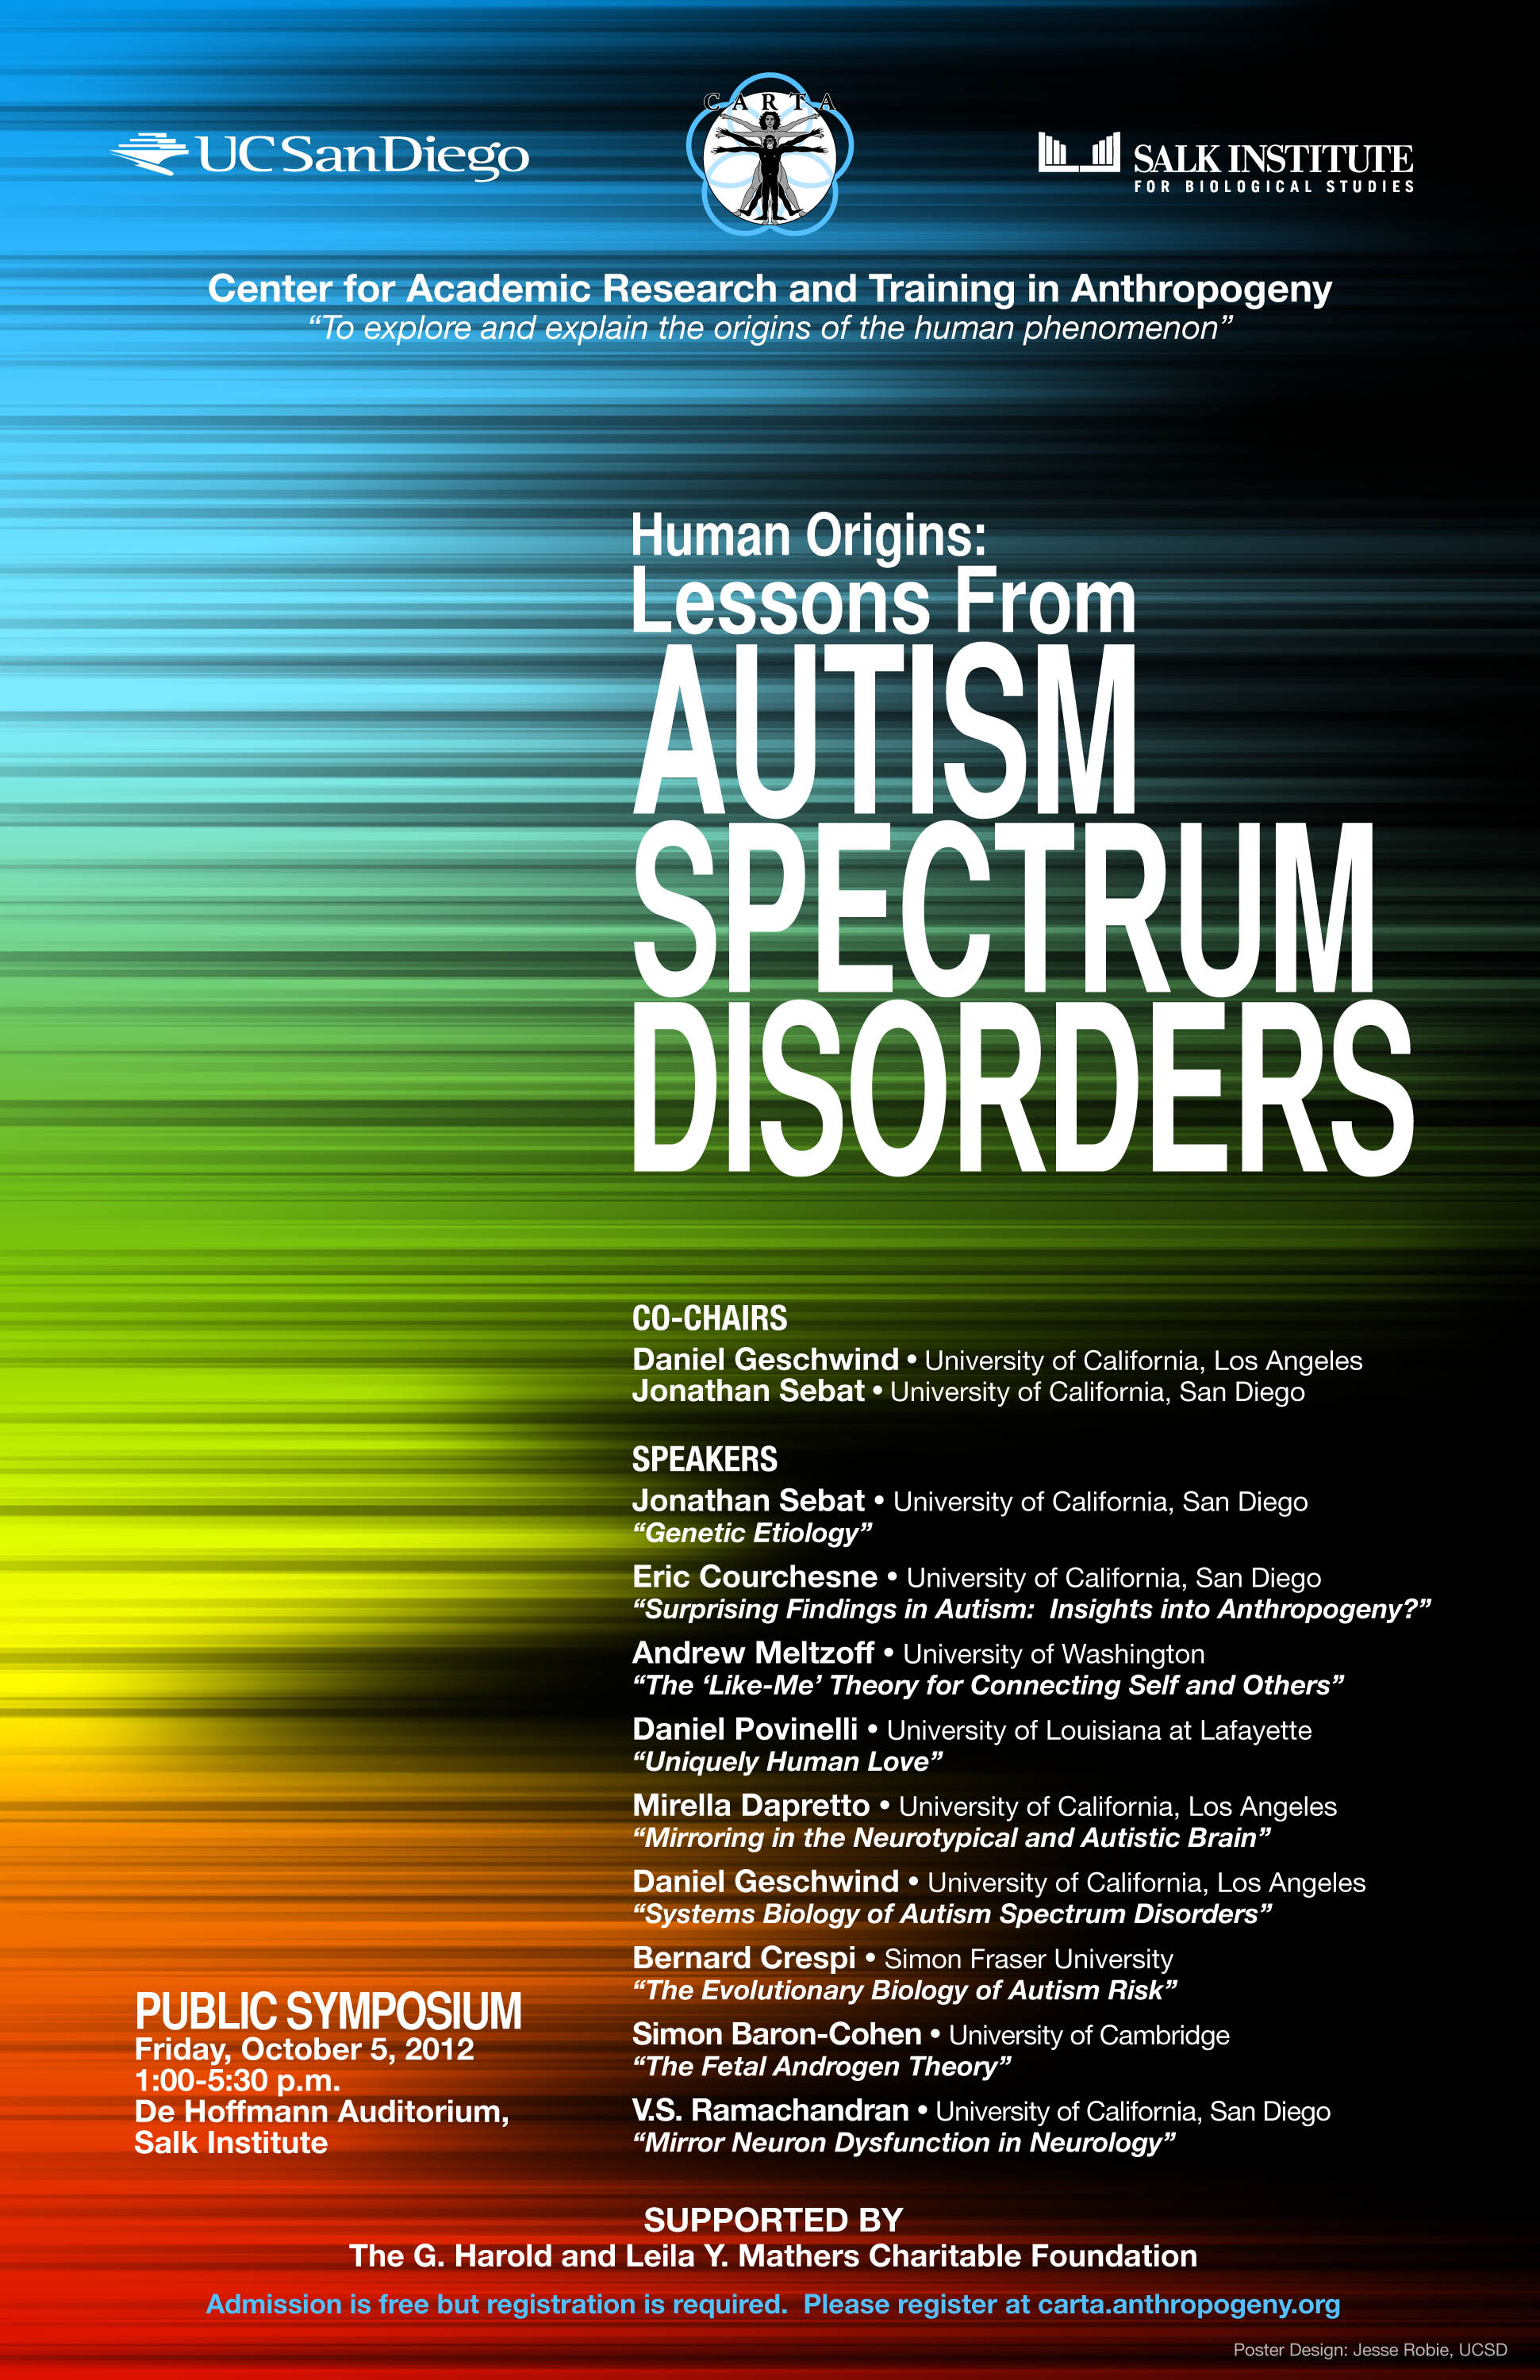 Human Origins Lessons From Autism Spectrum Disorders